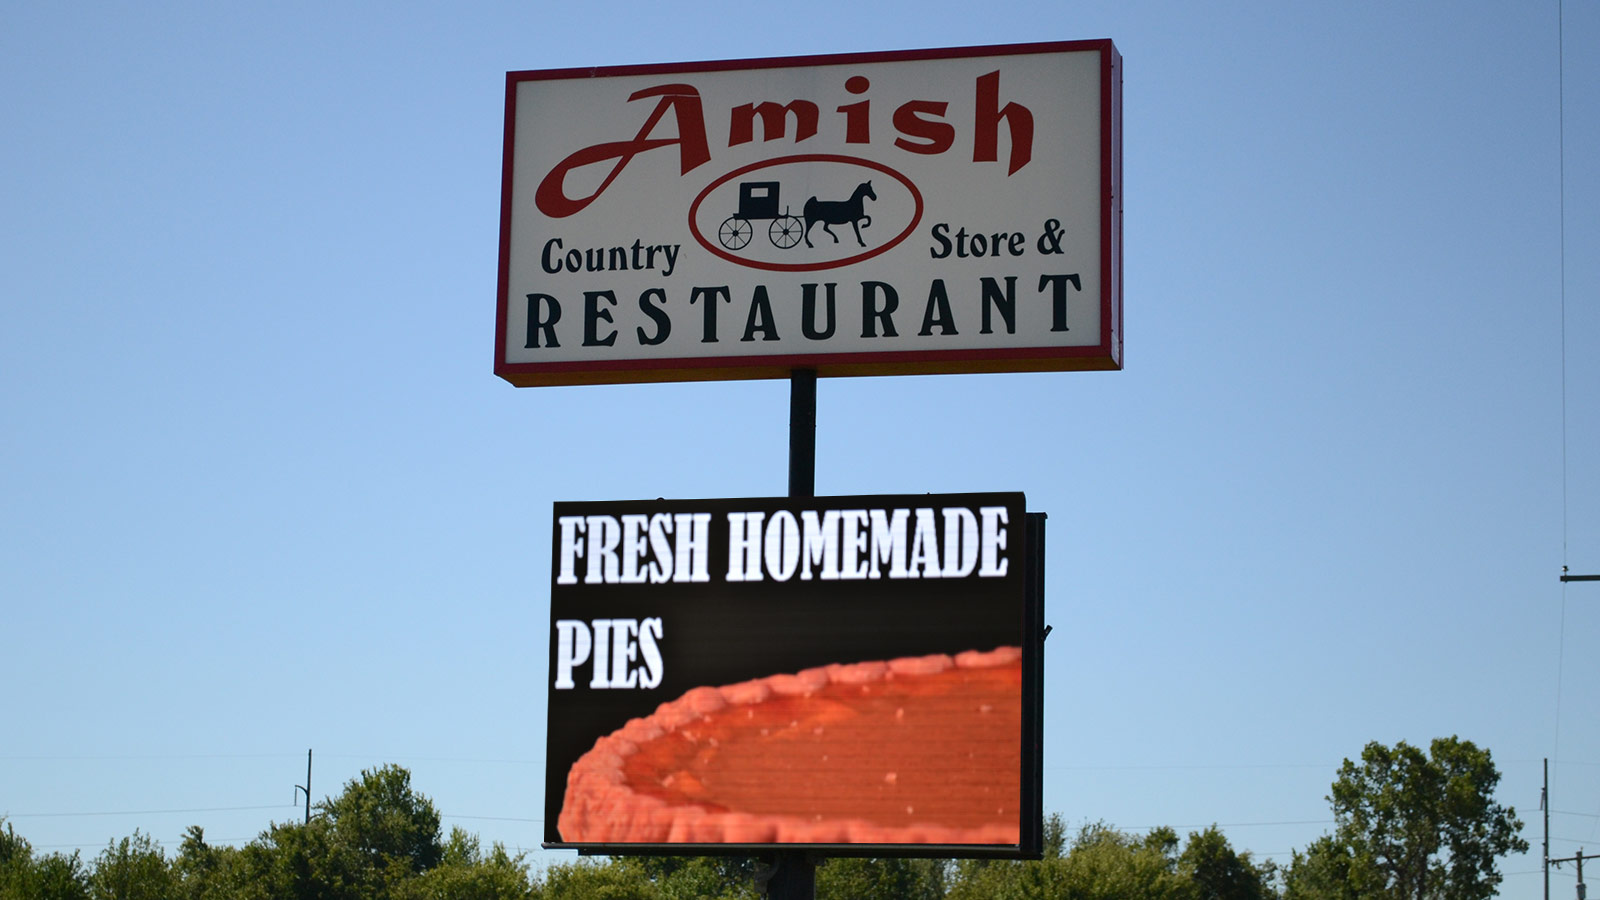 amishrestaurant